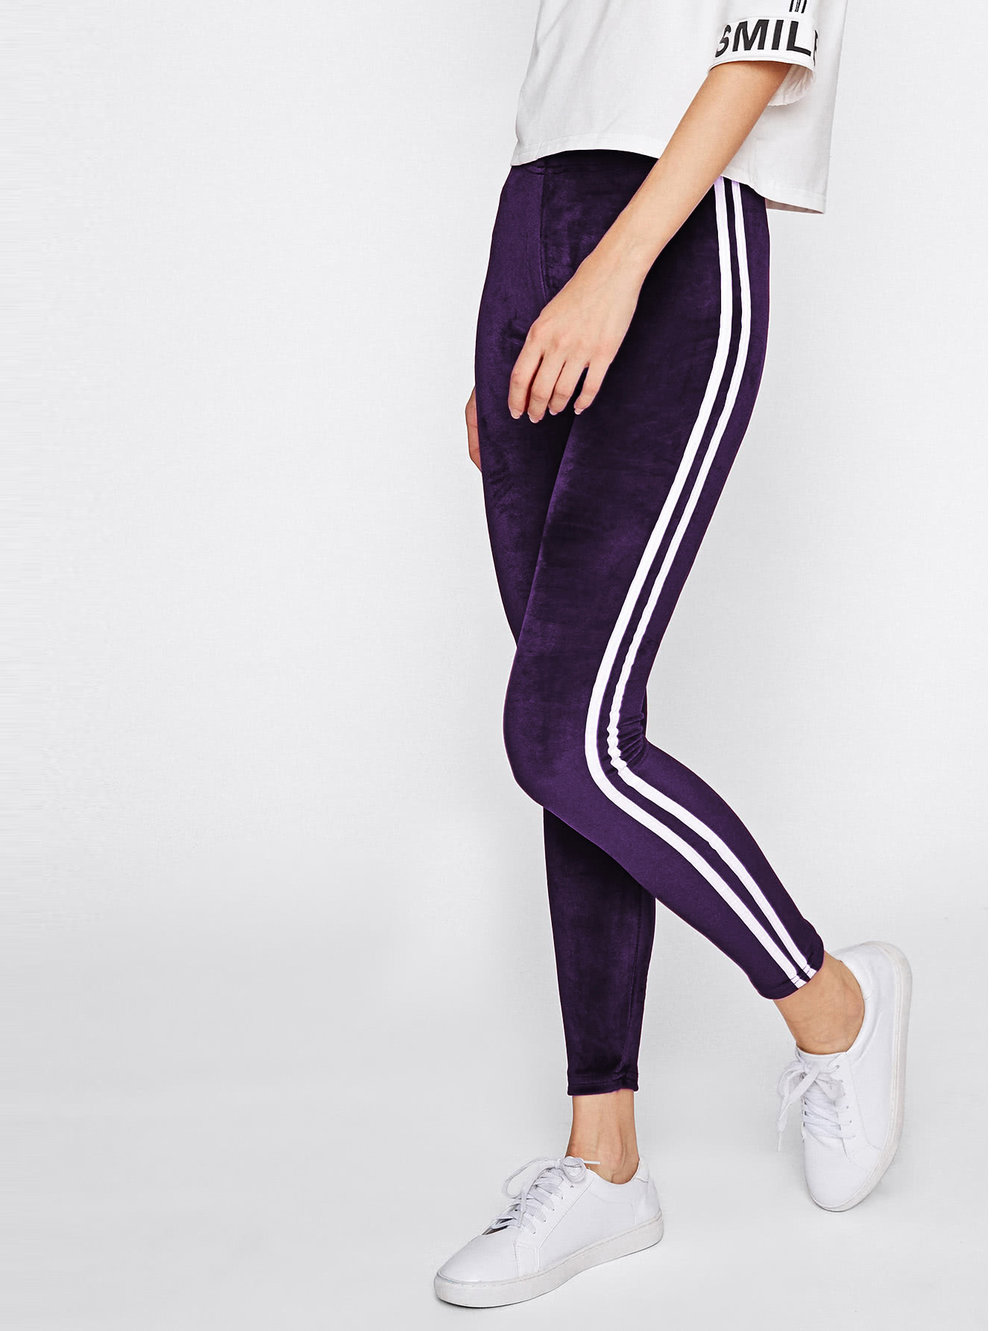 cyber monday sales romwe purple velvet leggings striped.jpg